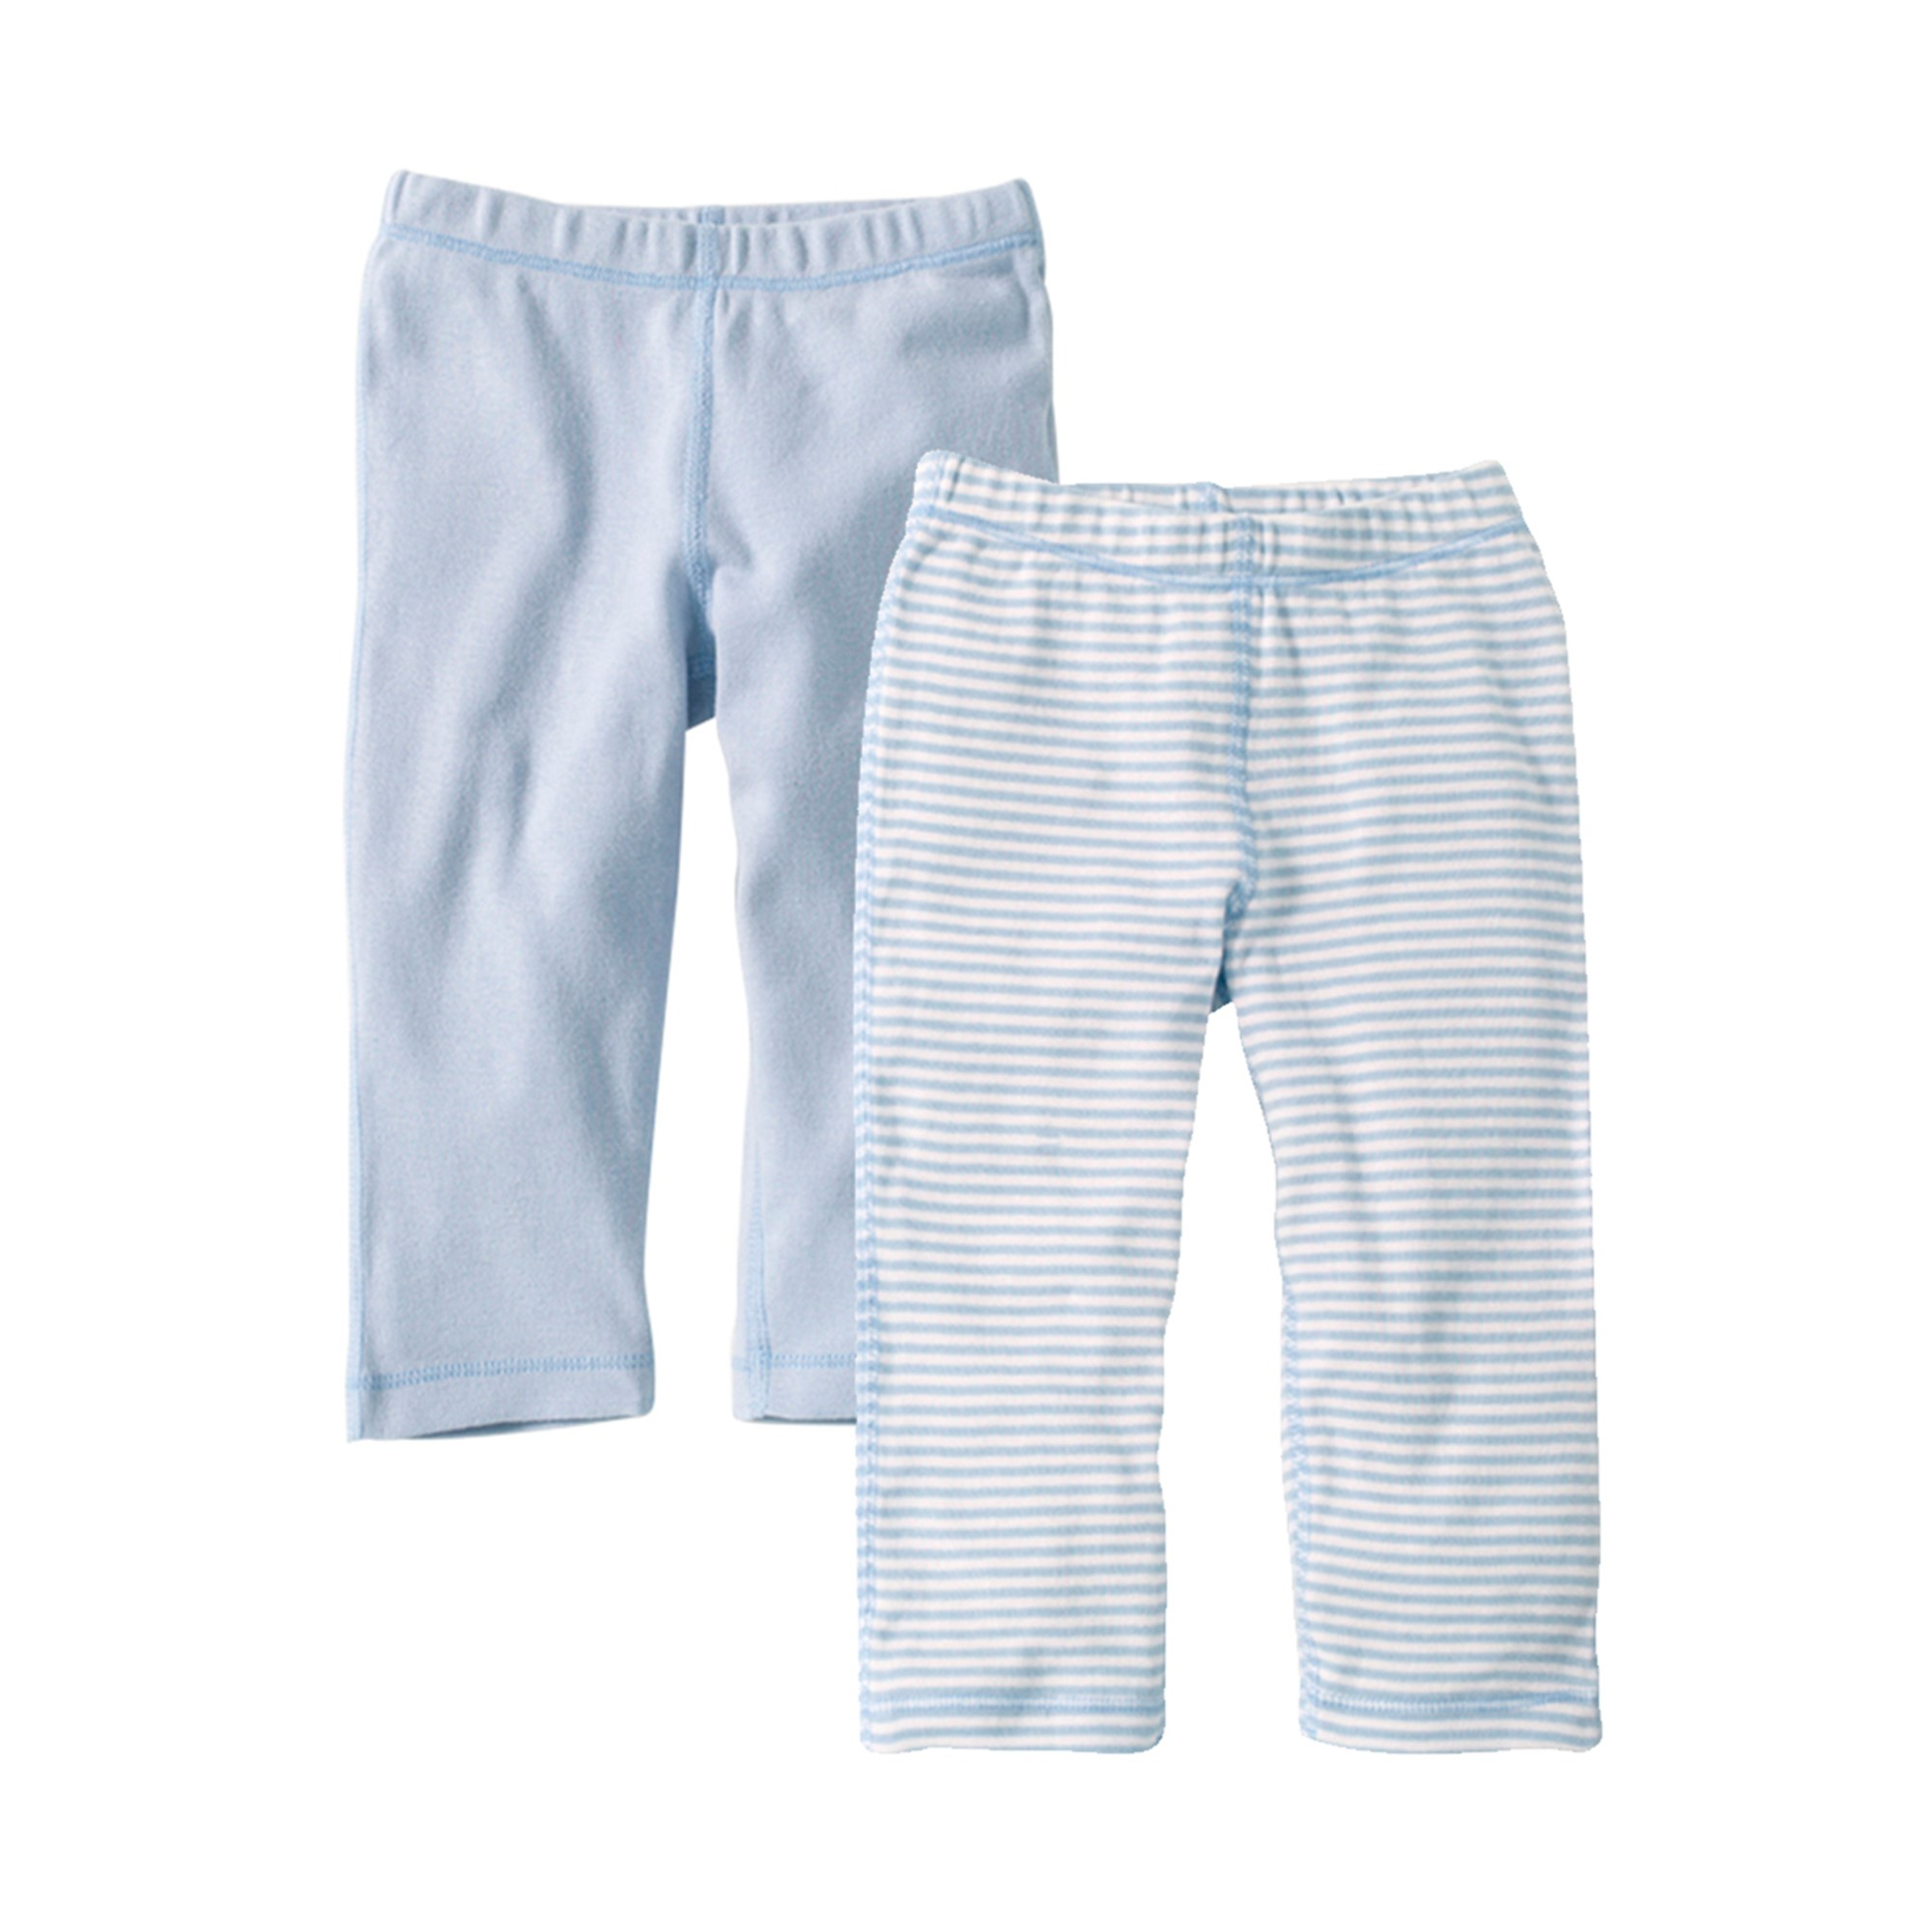 Organic Footless Pants, Solid and Stripe, 3M, Sky 2 Ct